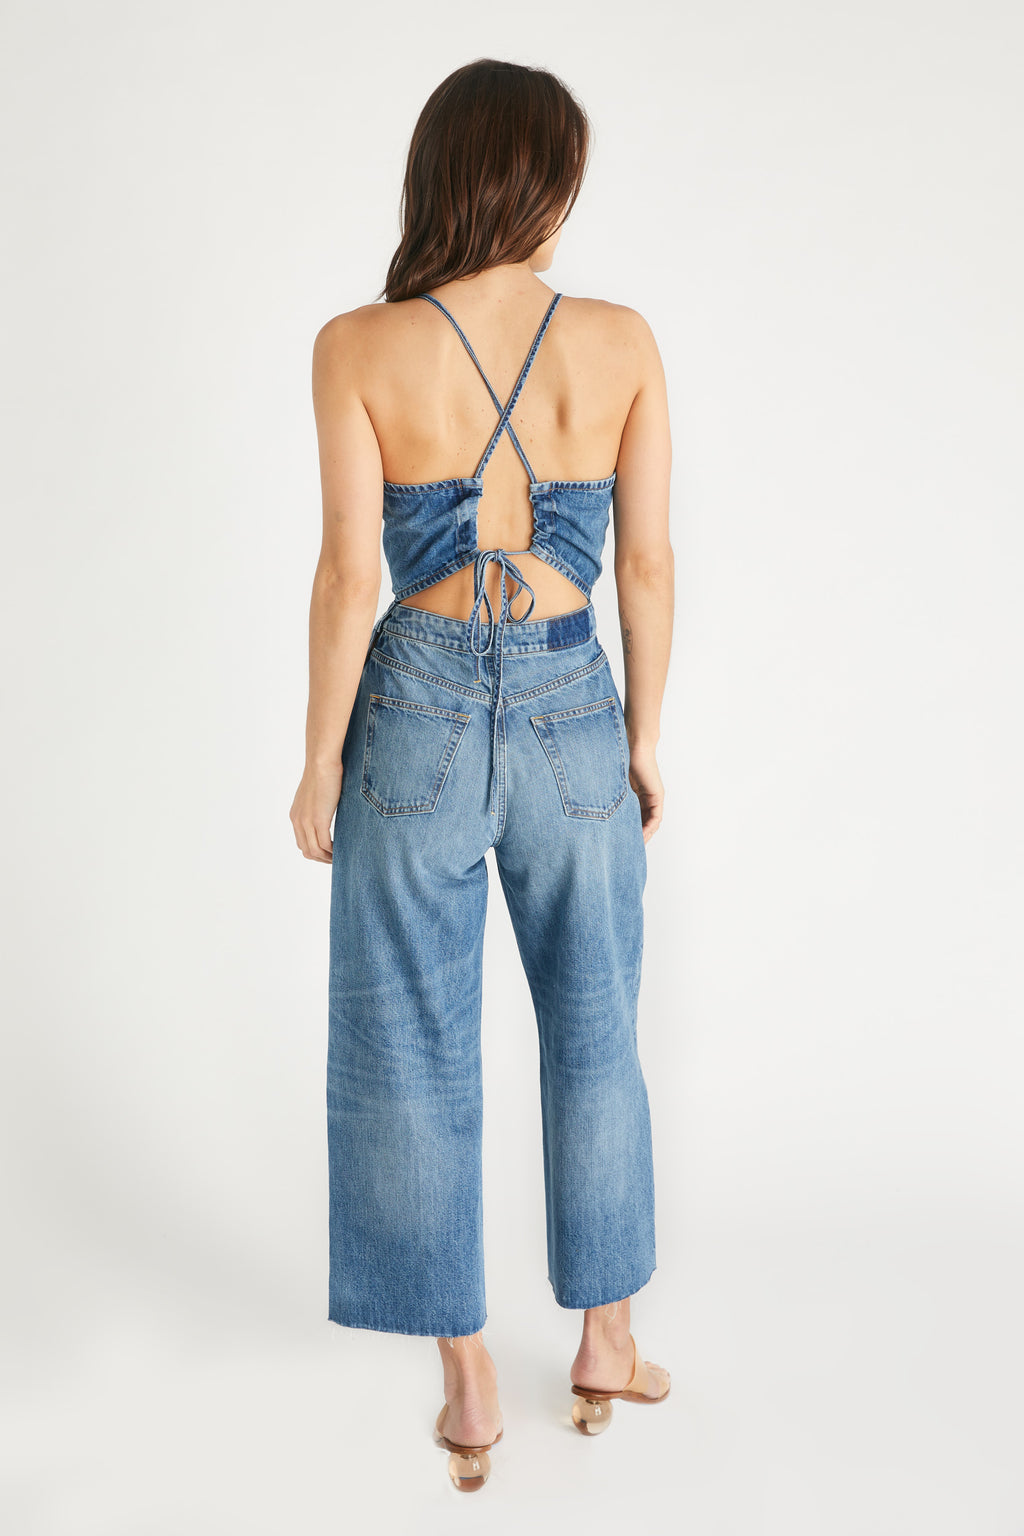 Cami Jumpsuit - Fleetwood